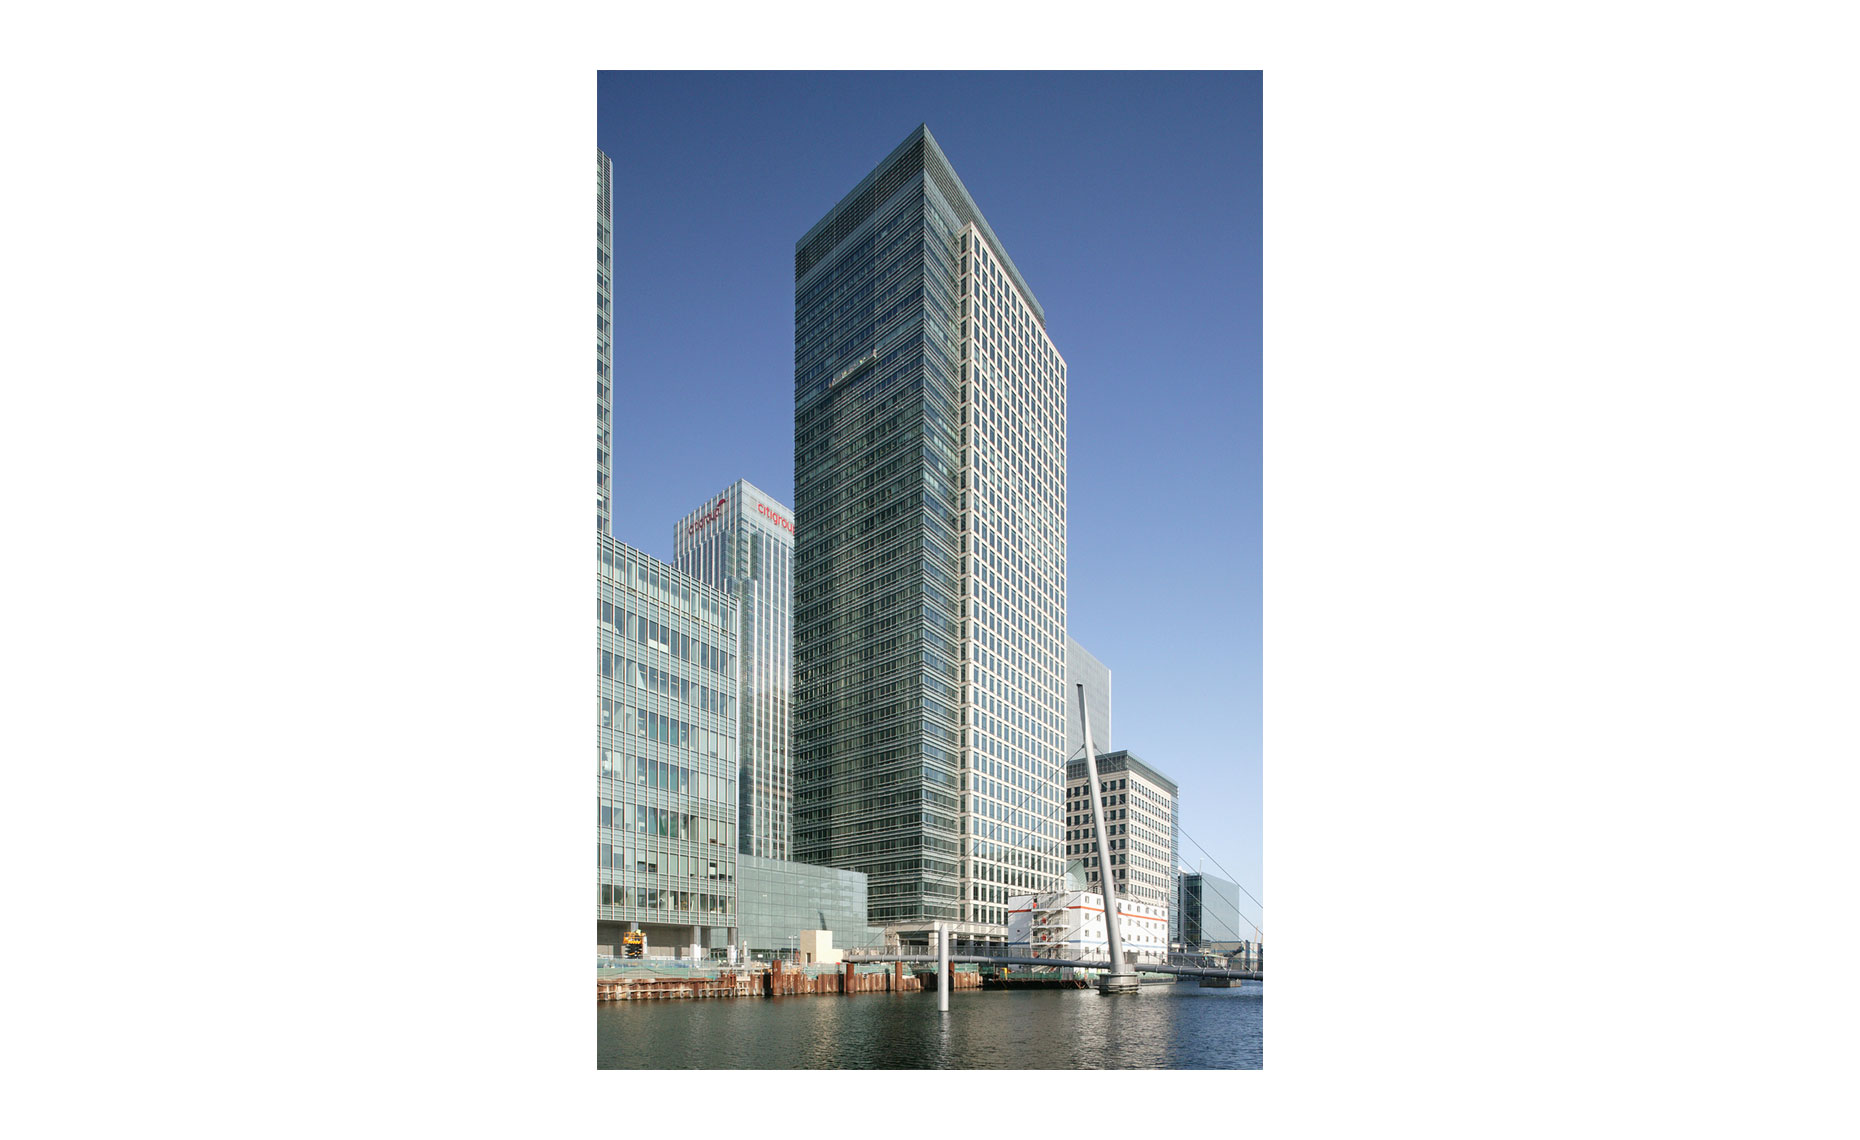 Canary Wharf 2 | Neil Fraser Photography | Neil Fraser Photographer